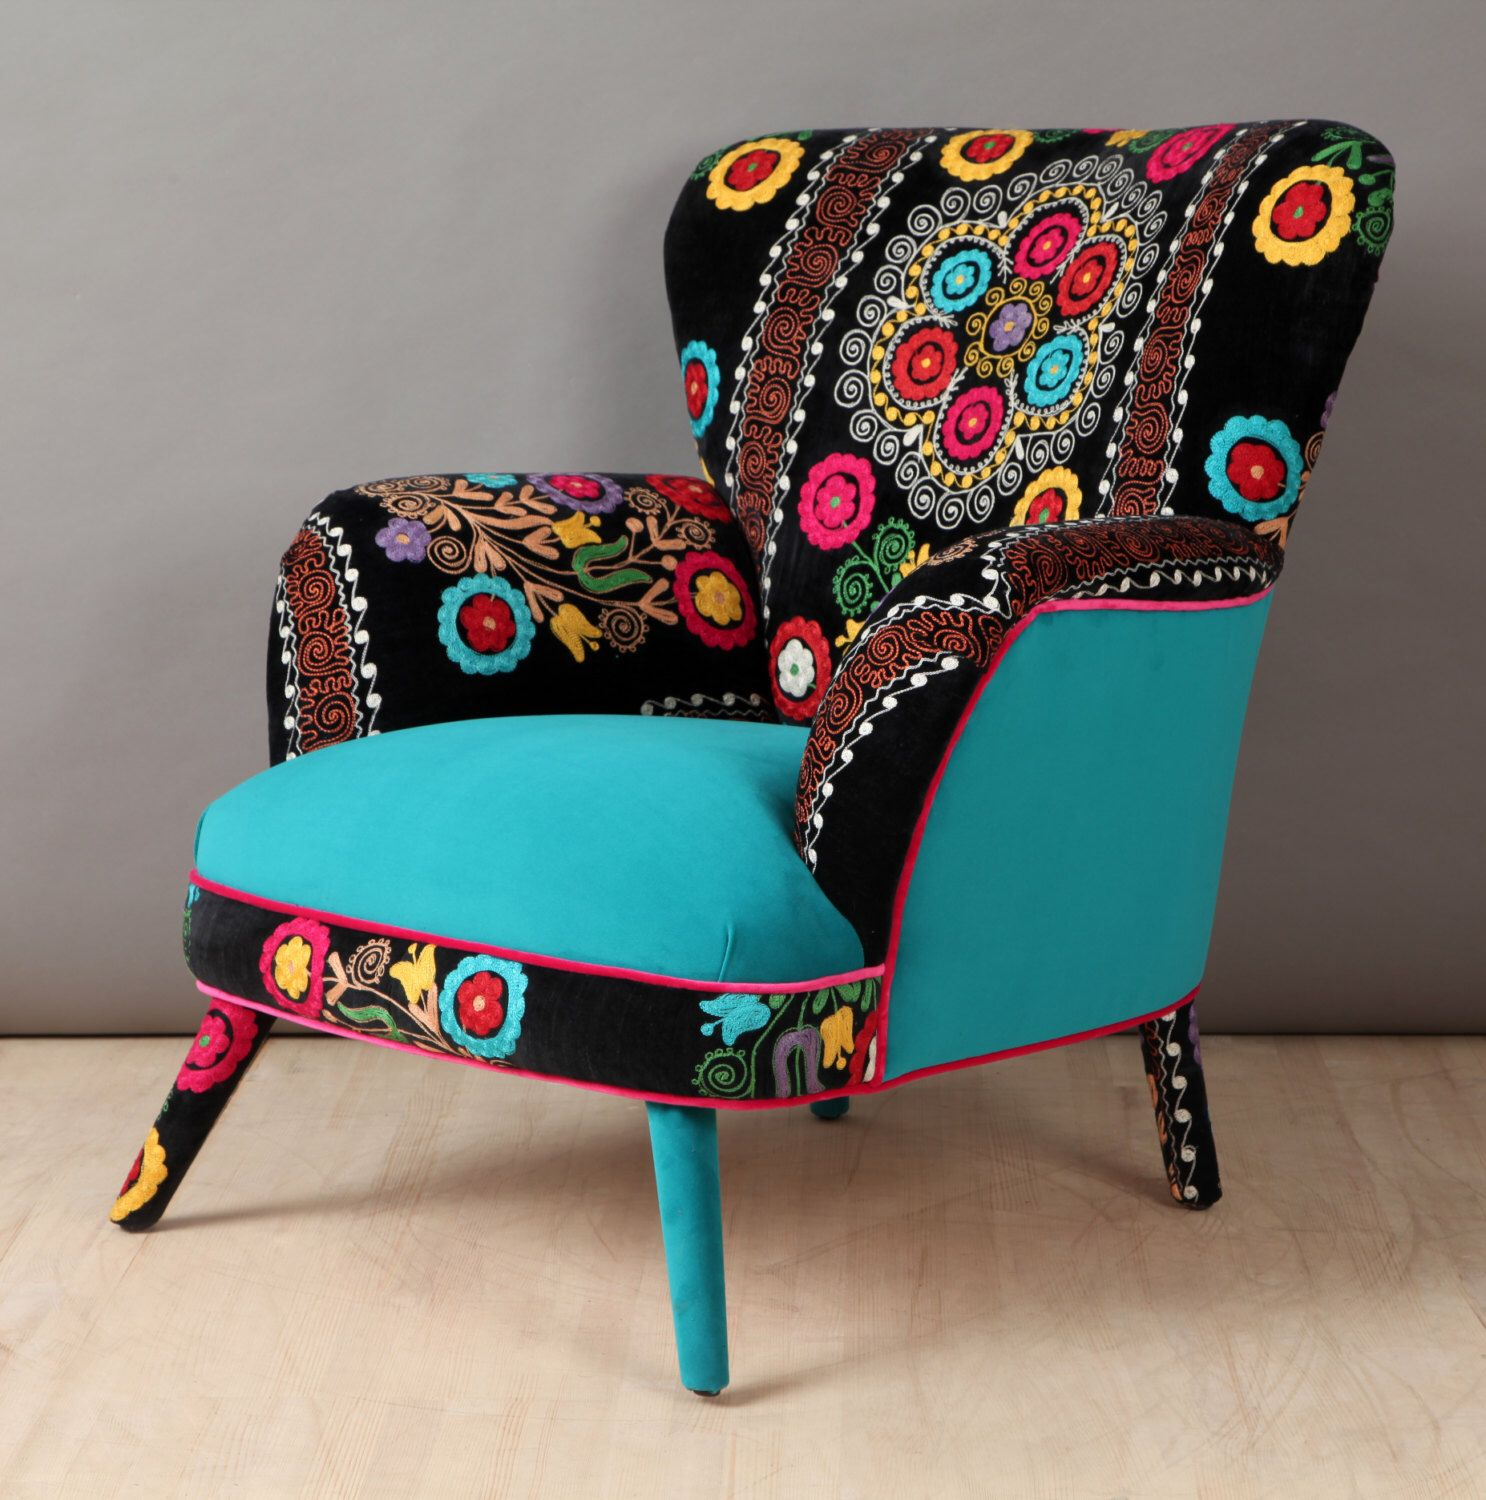 Wonderful Suzani Armchair   Turquoise Love By Namedesignstudio On Etsy  Https://www.etsy